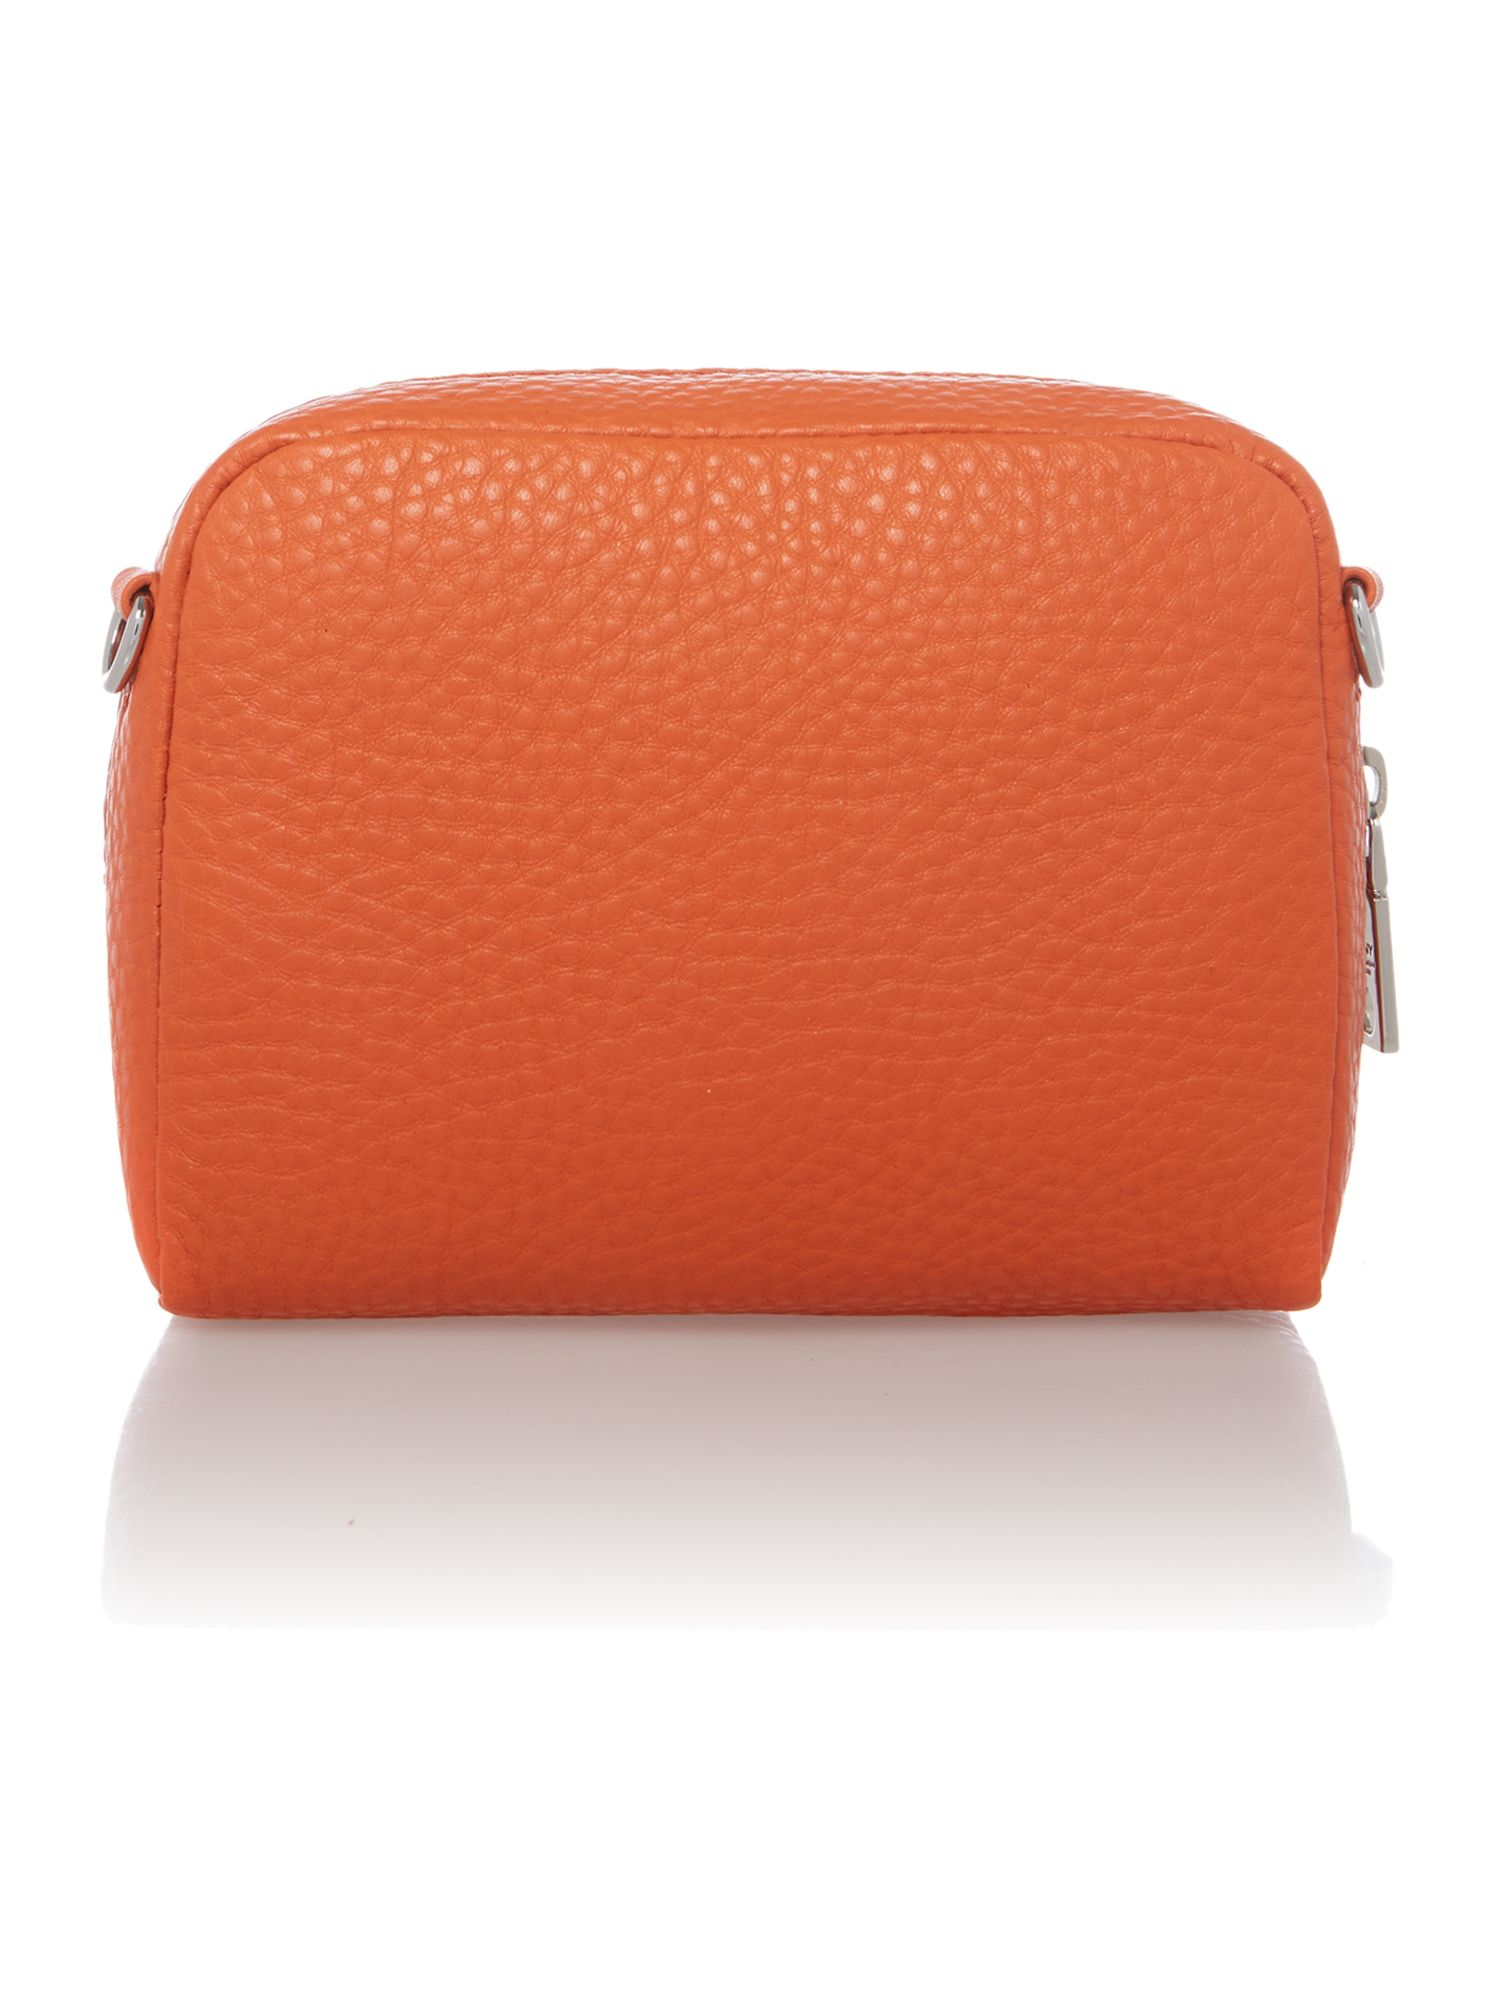 Tribeca soft orange small tote bag